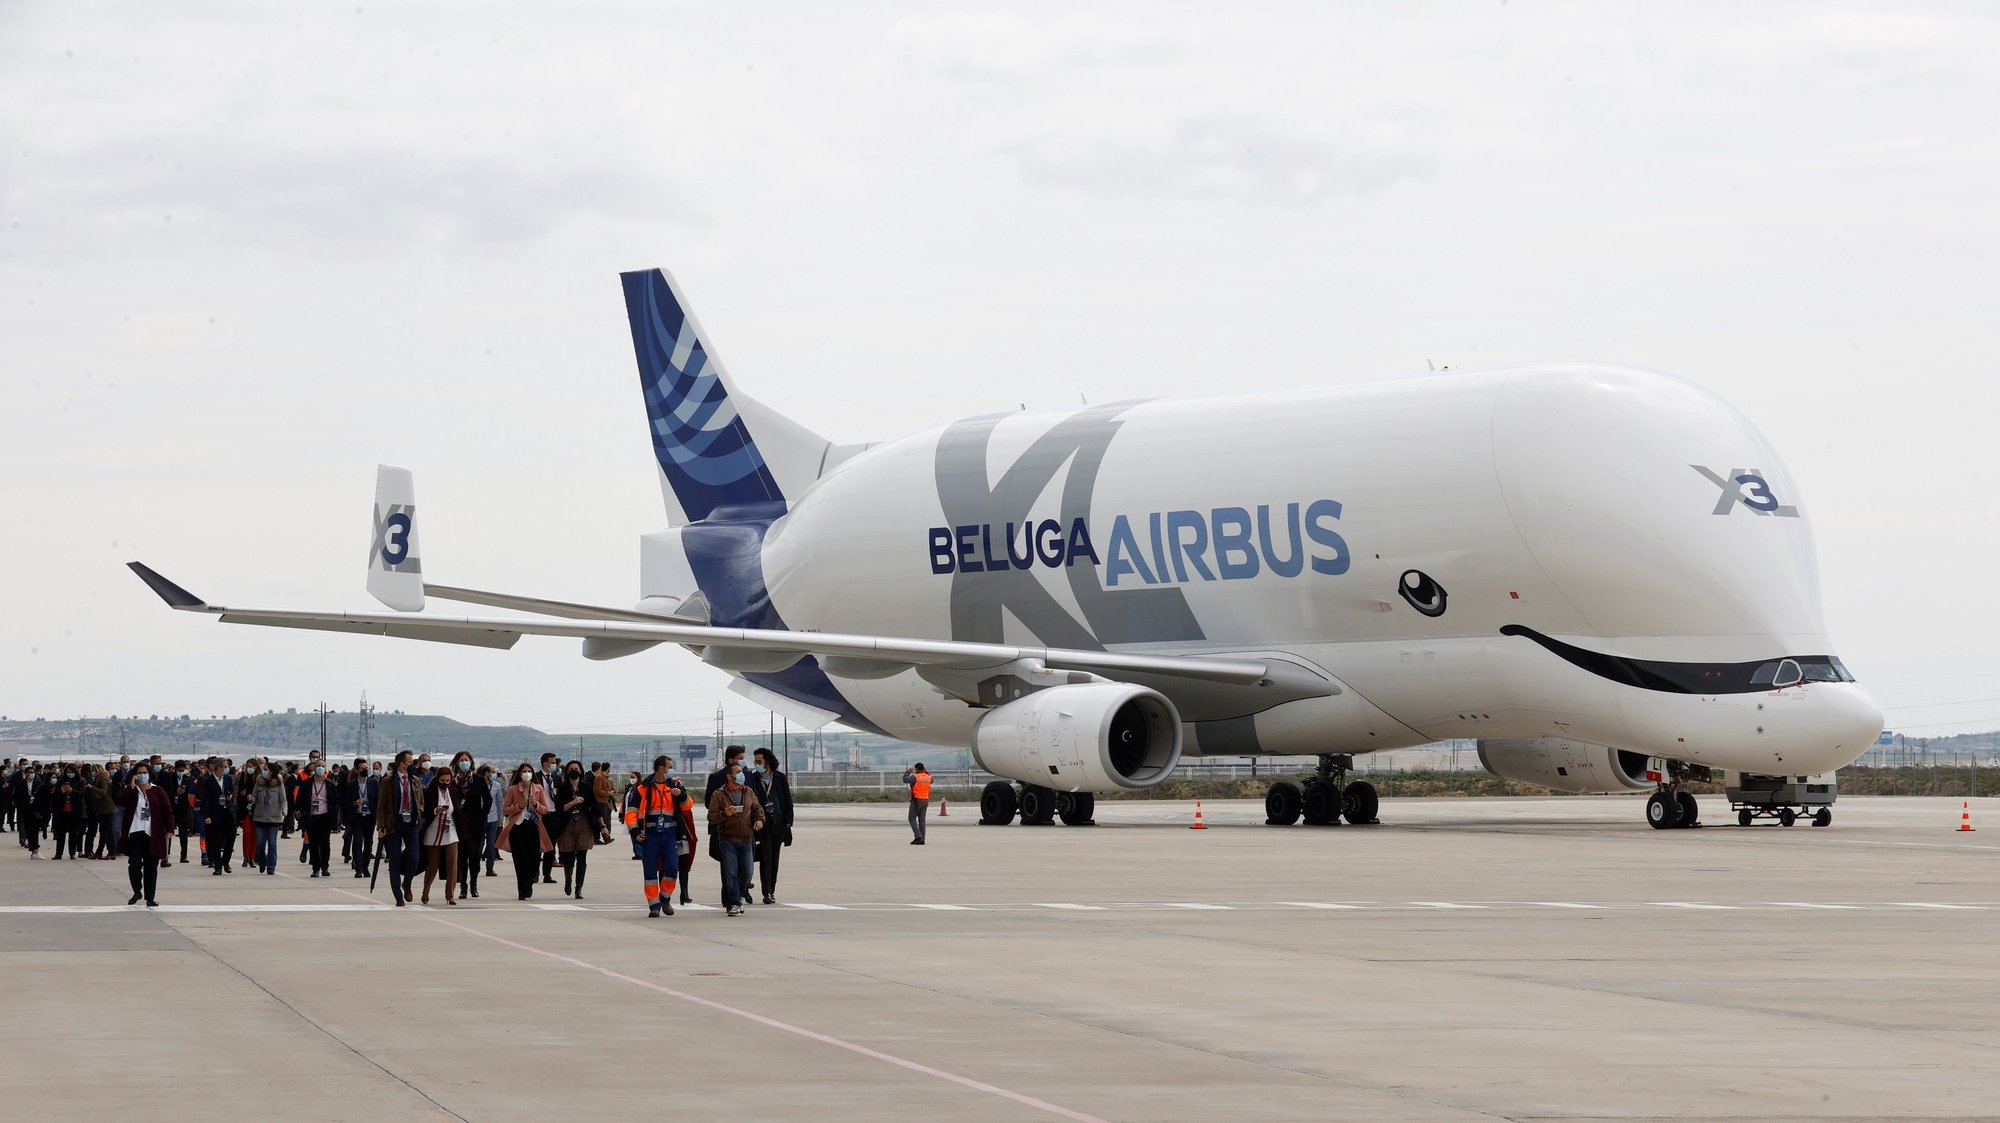 epa09136831 Several guests walk past an Airbus Beluga XL (Airbus A330-700L) aircraft during the opening of Airbus Defense and Space Campus, in the town of Getafe, outside Madrid, Spain, 15 April 2021.  EPA/Chema Moya